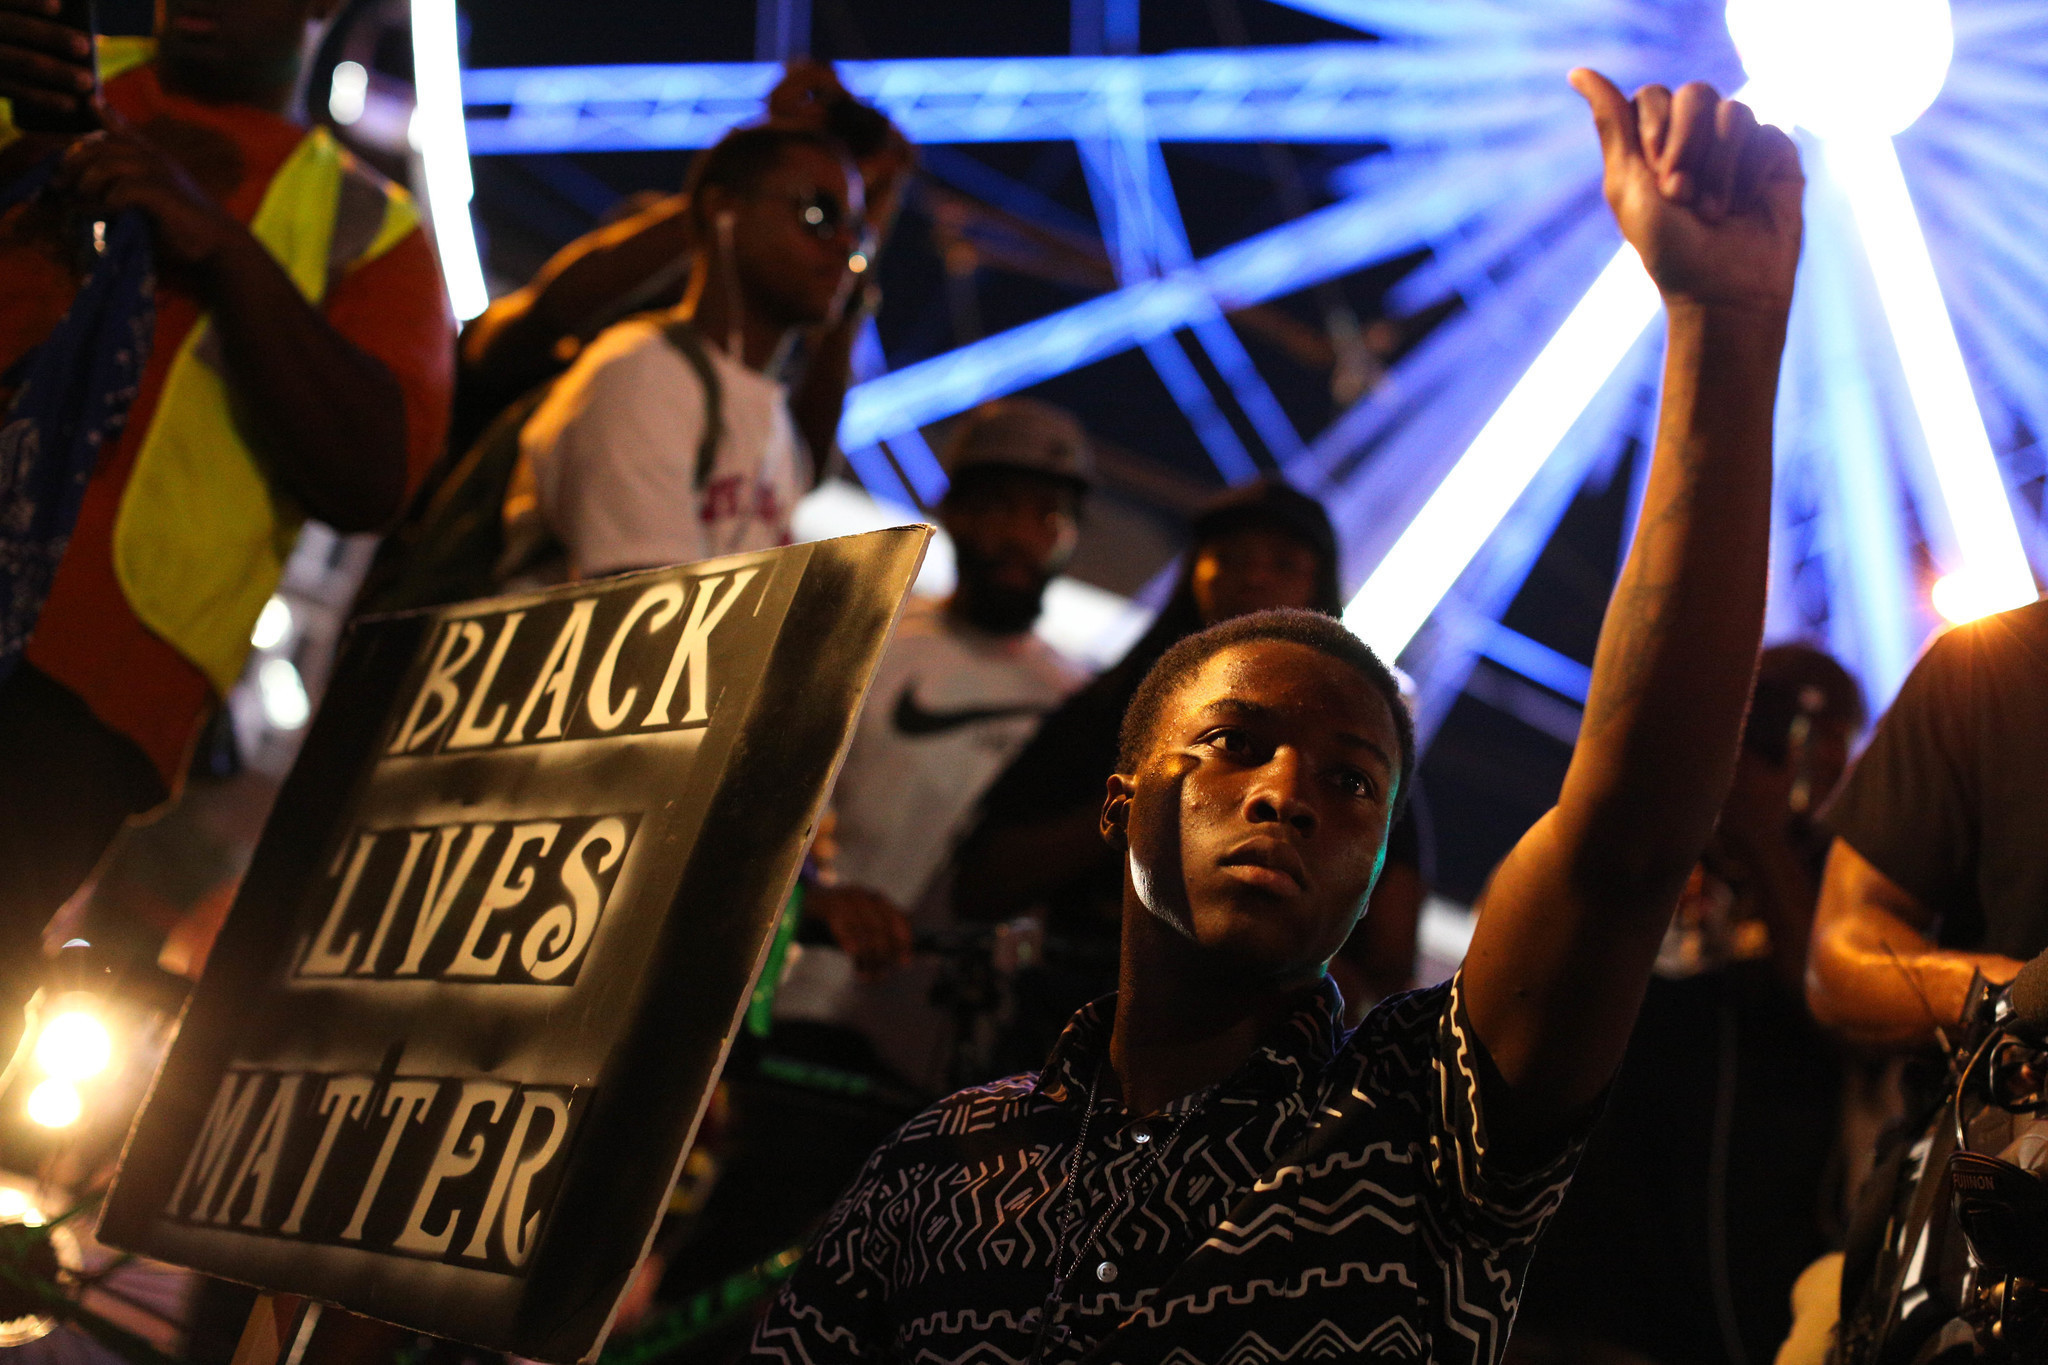 Usa Mix Created At 2016 09 24 0613 Hall Effect Sensor Wiring Diagram Http Wwwjustanswercom Jeep 3awtd Demonstrators Flood Streets Again In Charlotte And Atlanta To Protest Police Shootings 1399 18